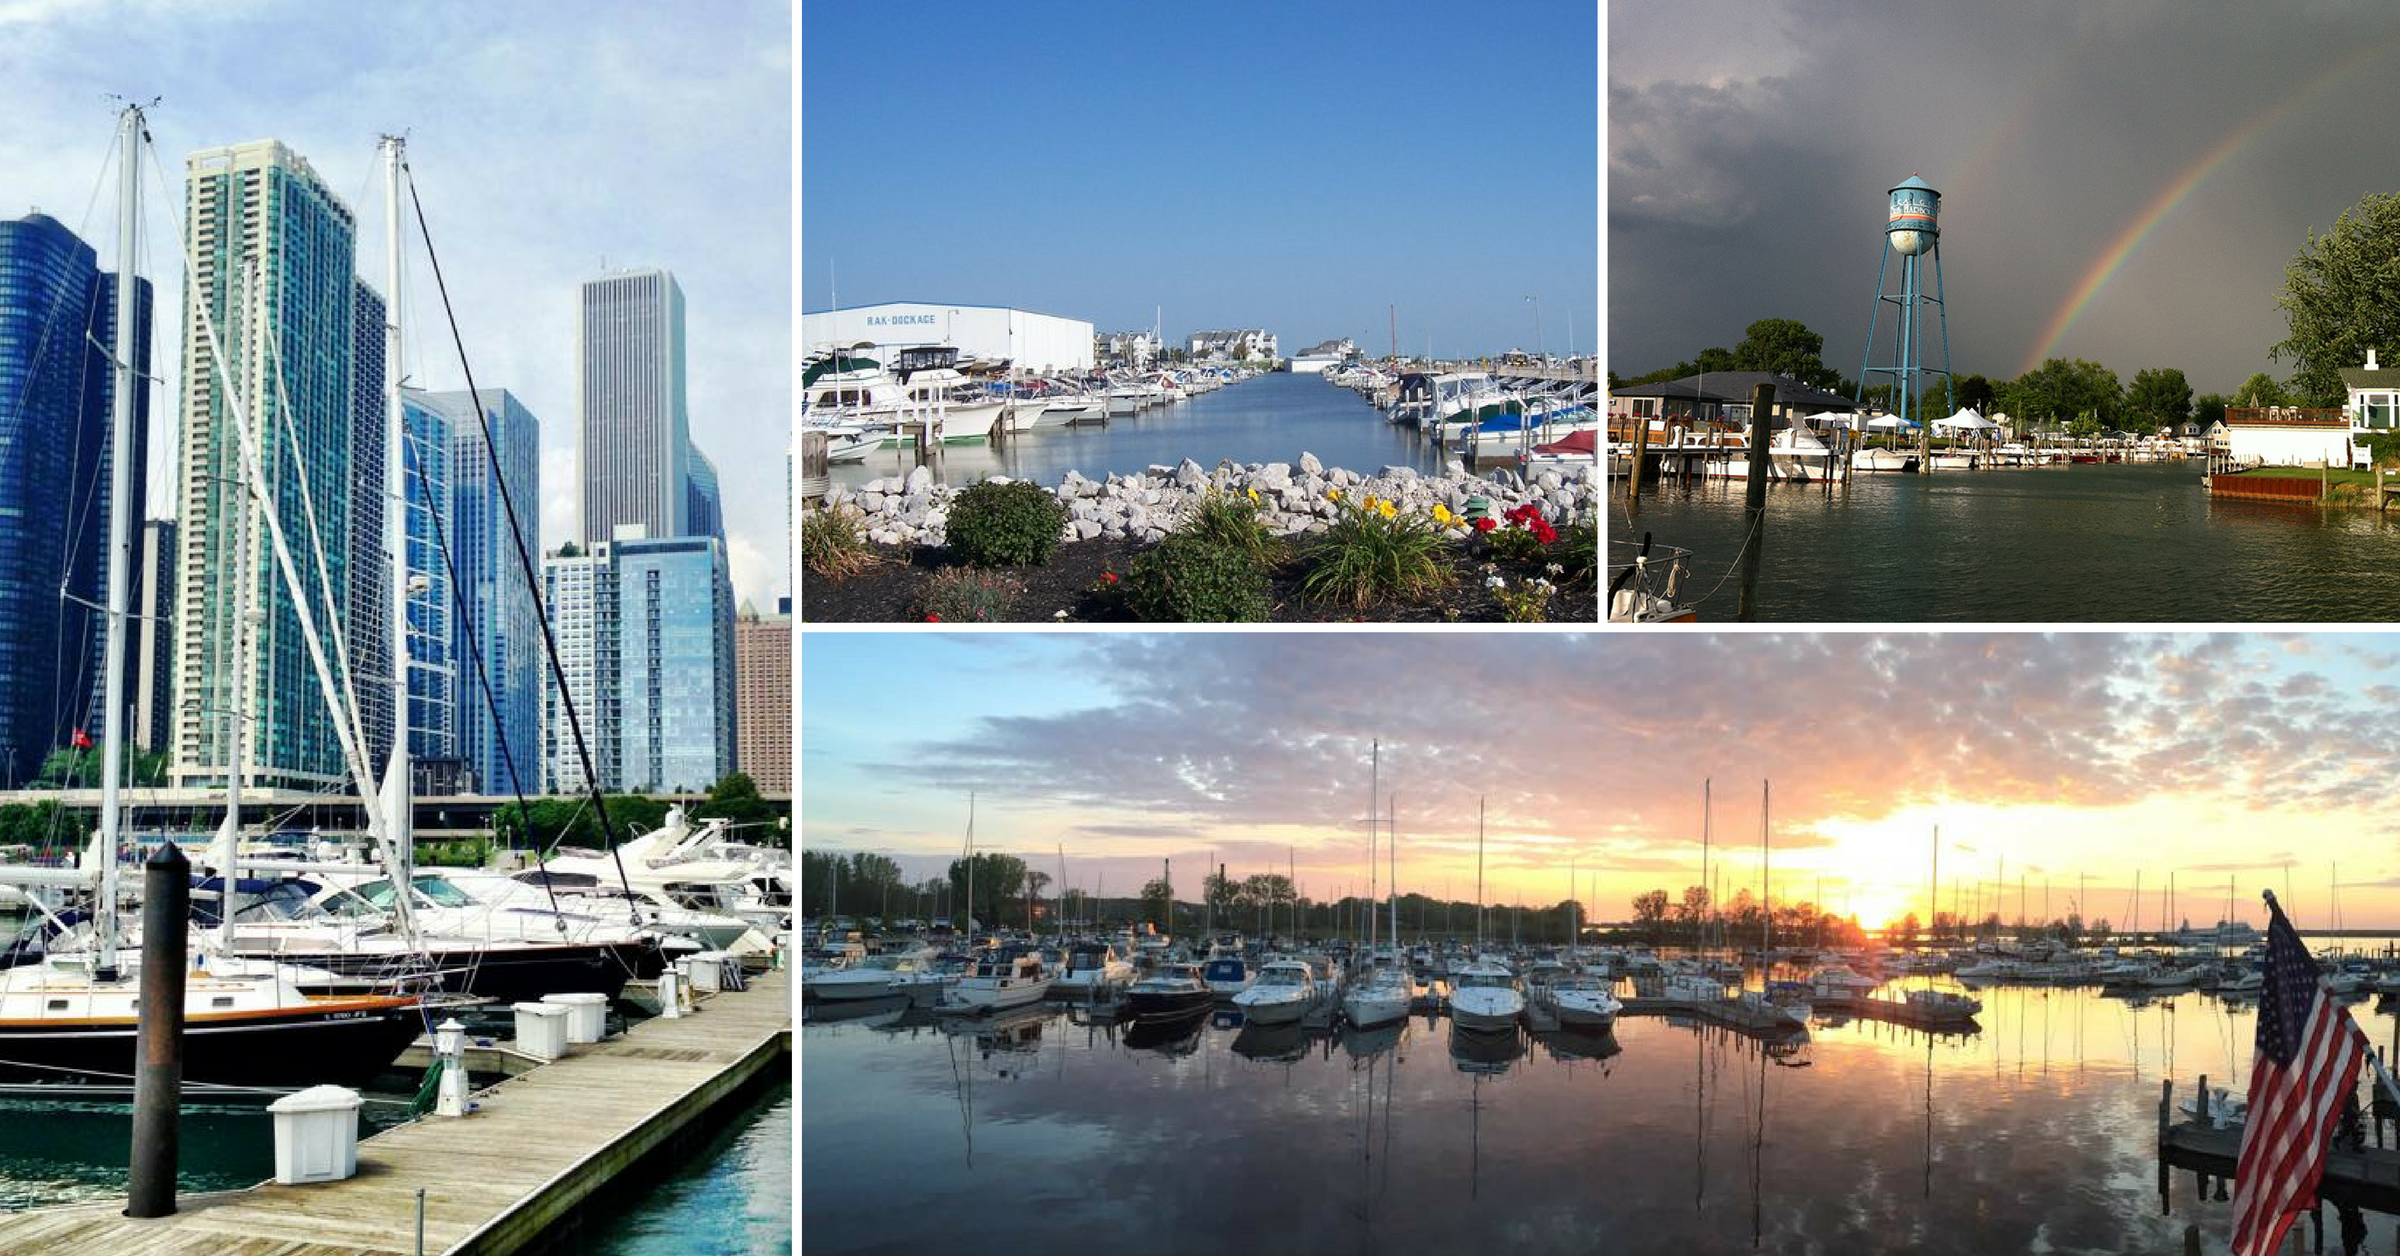 Reserve Slips at 18 New Dockwa Marinas in the Midwest